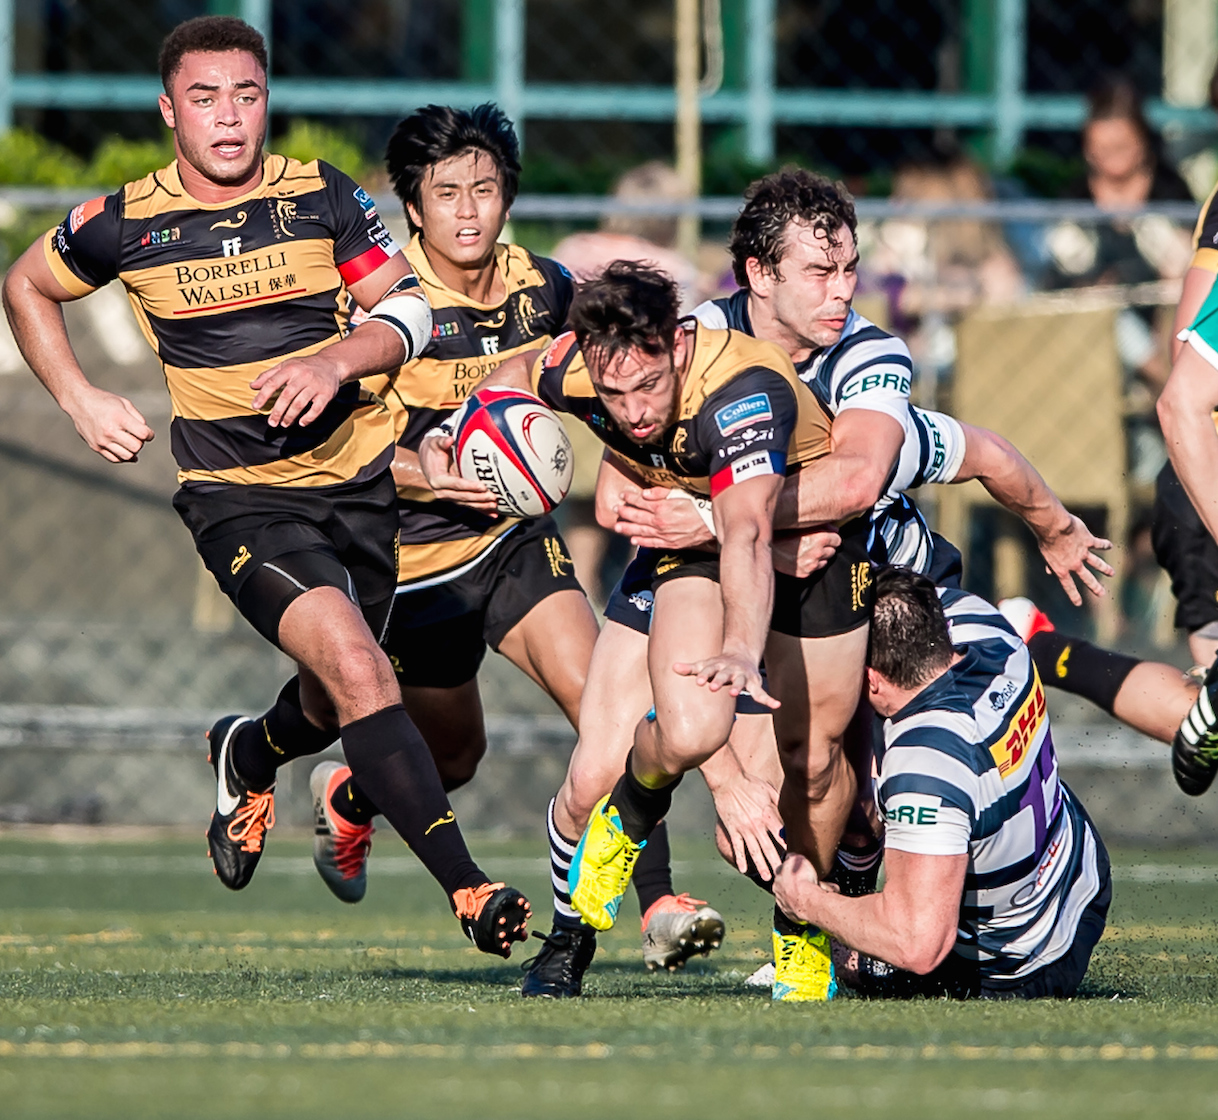 HKCC Hands Valley First Loss In